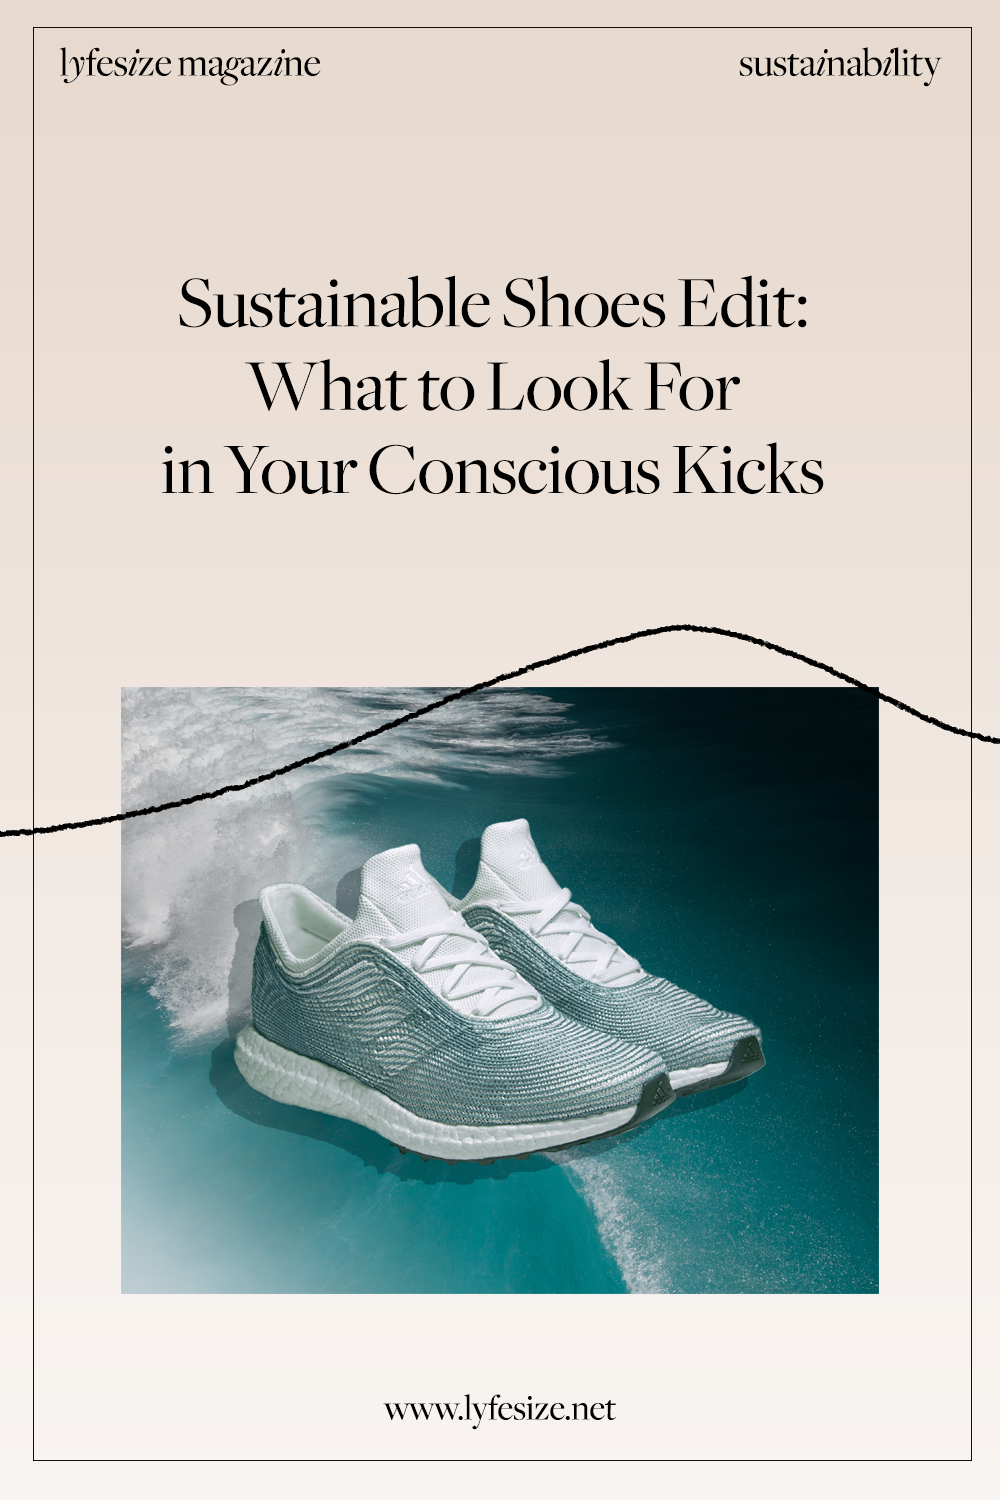 Pinterest post for sustainable shoes on Lyfesize